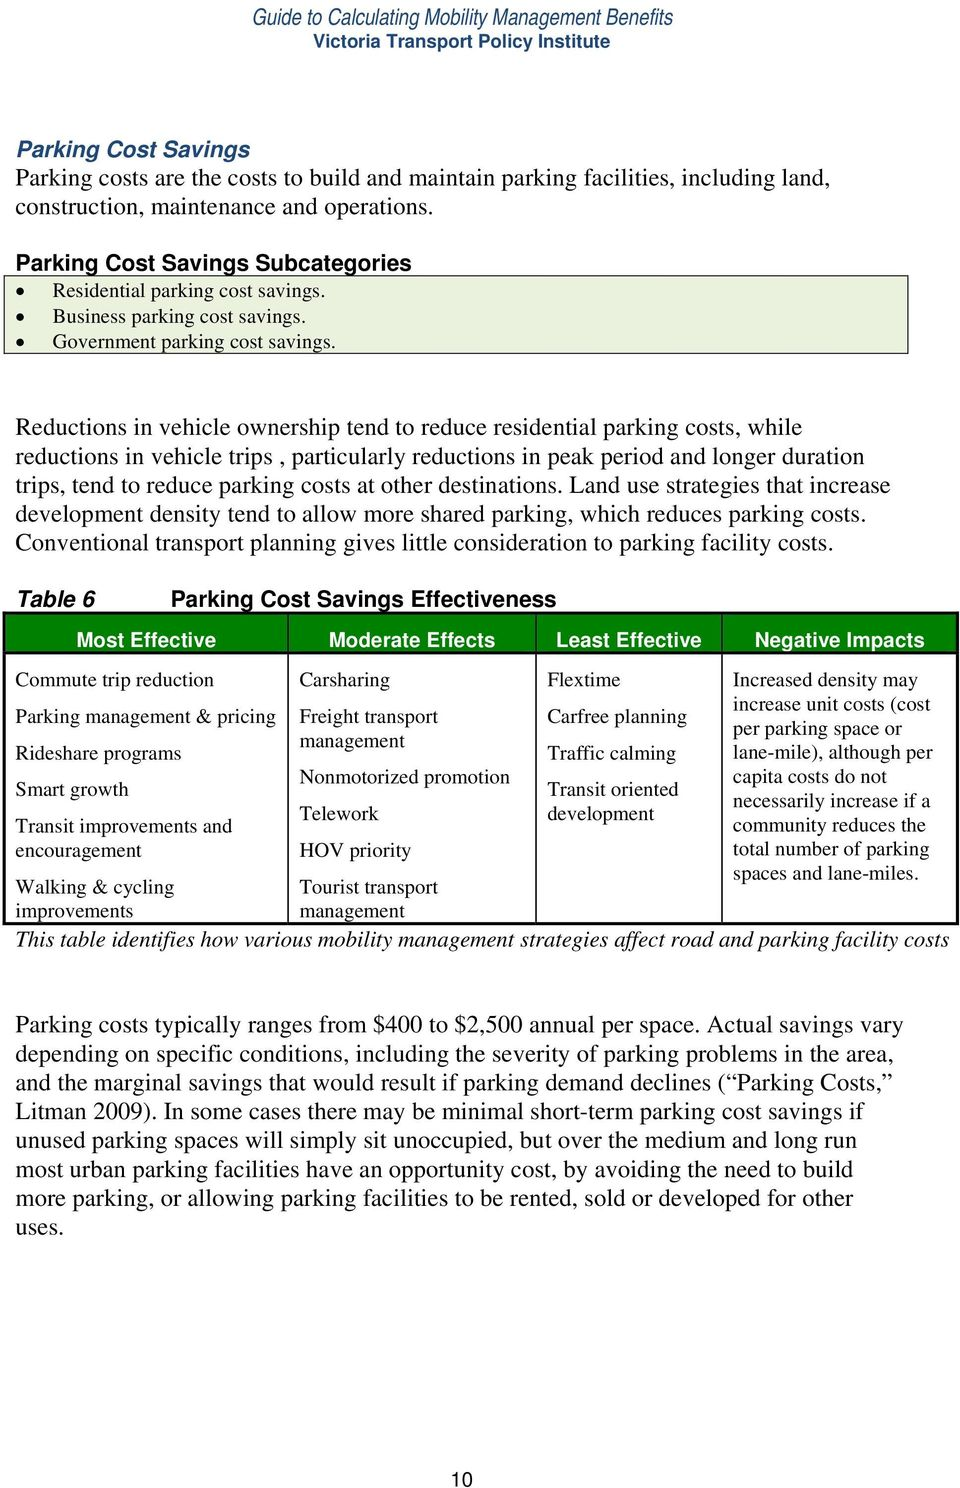 Reductions in vehicle ownership tend to reduce residential parking costs, while reductions in vehicle trips, particularly reductions in peak period and longer duration trips, tend to reduce parking